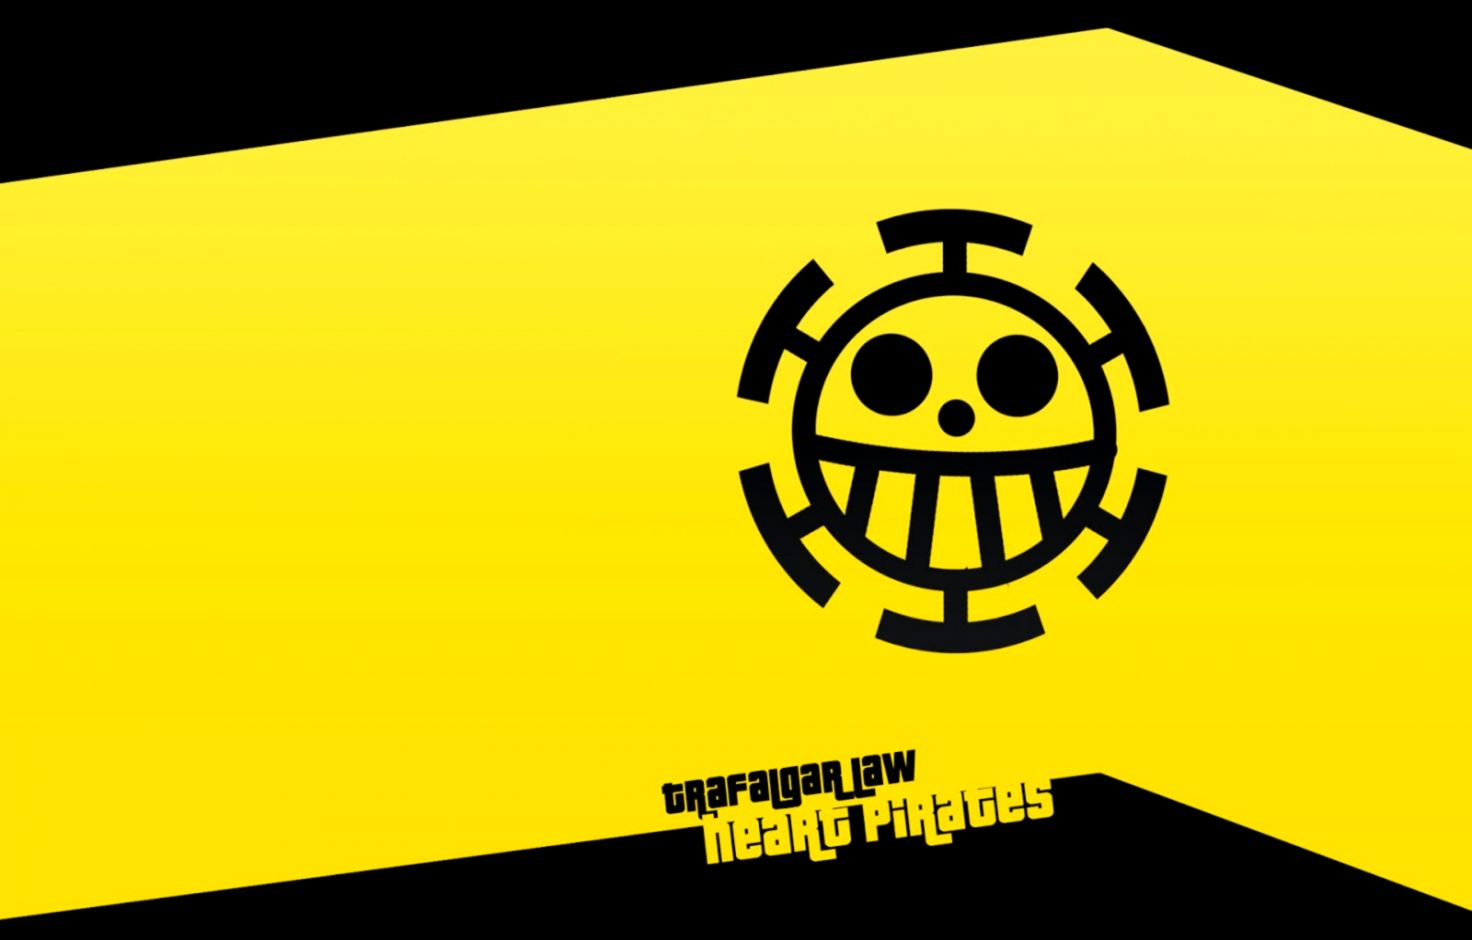 One Piece Logo Wallpaper Hd | Wallpapers Collection